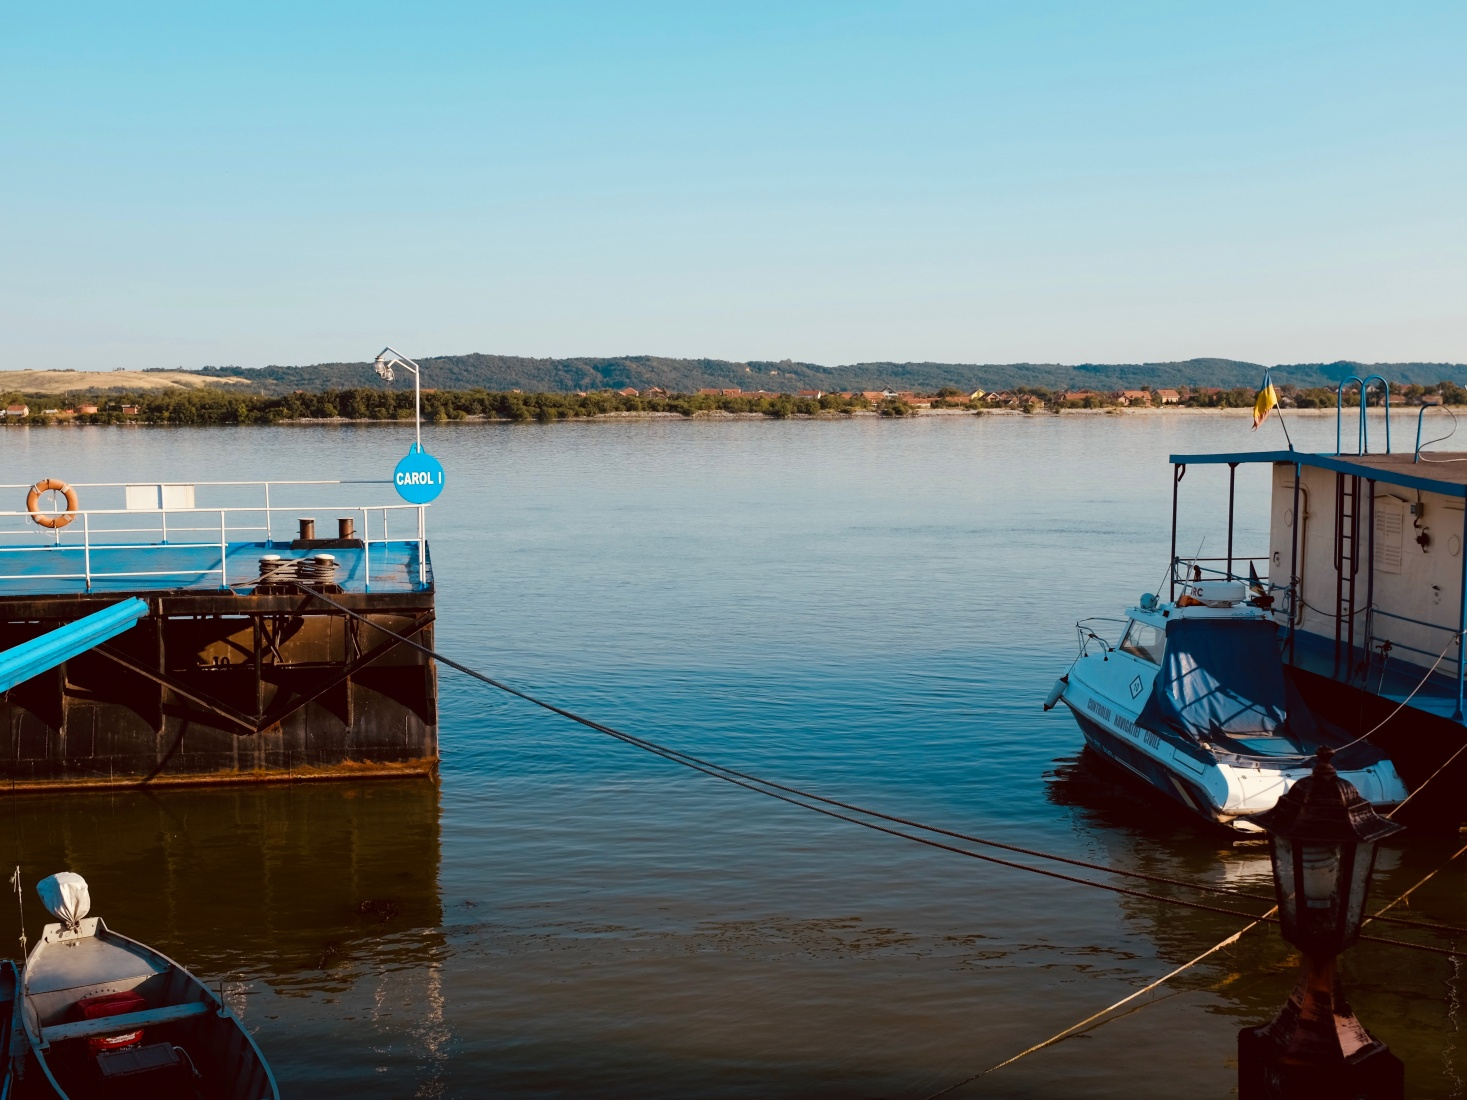 A quiet evening at a dock on the river from the Romanian port of Drobeta-Turnu Severin on the Danube.